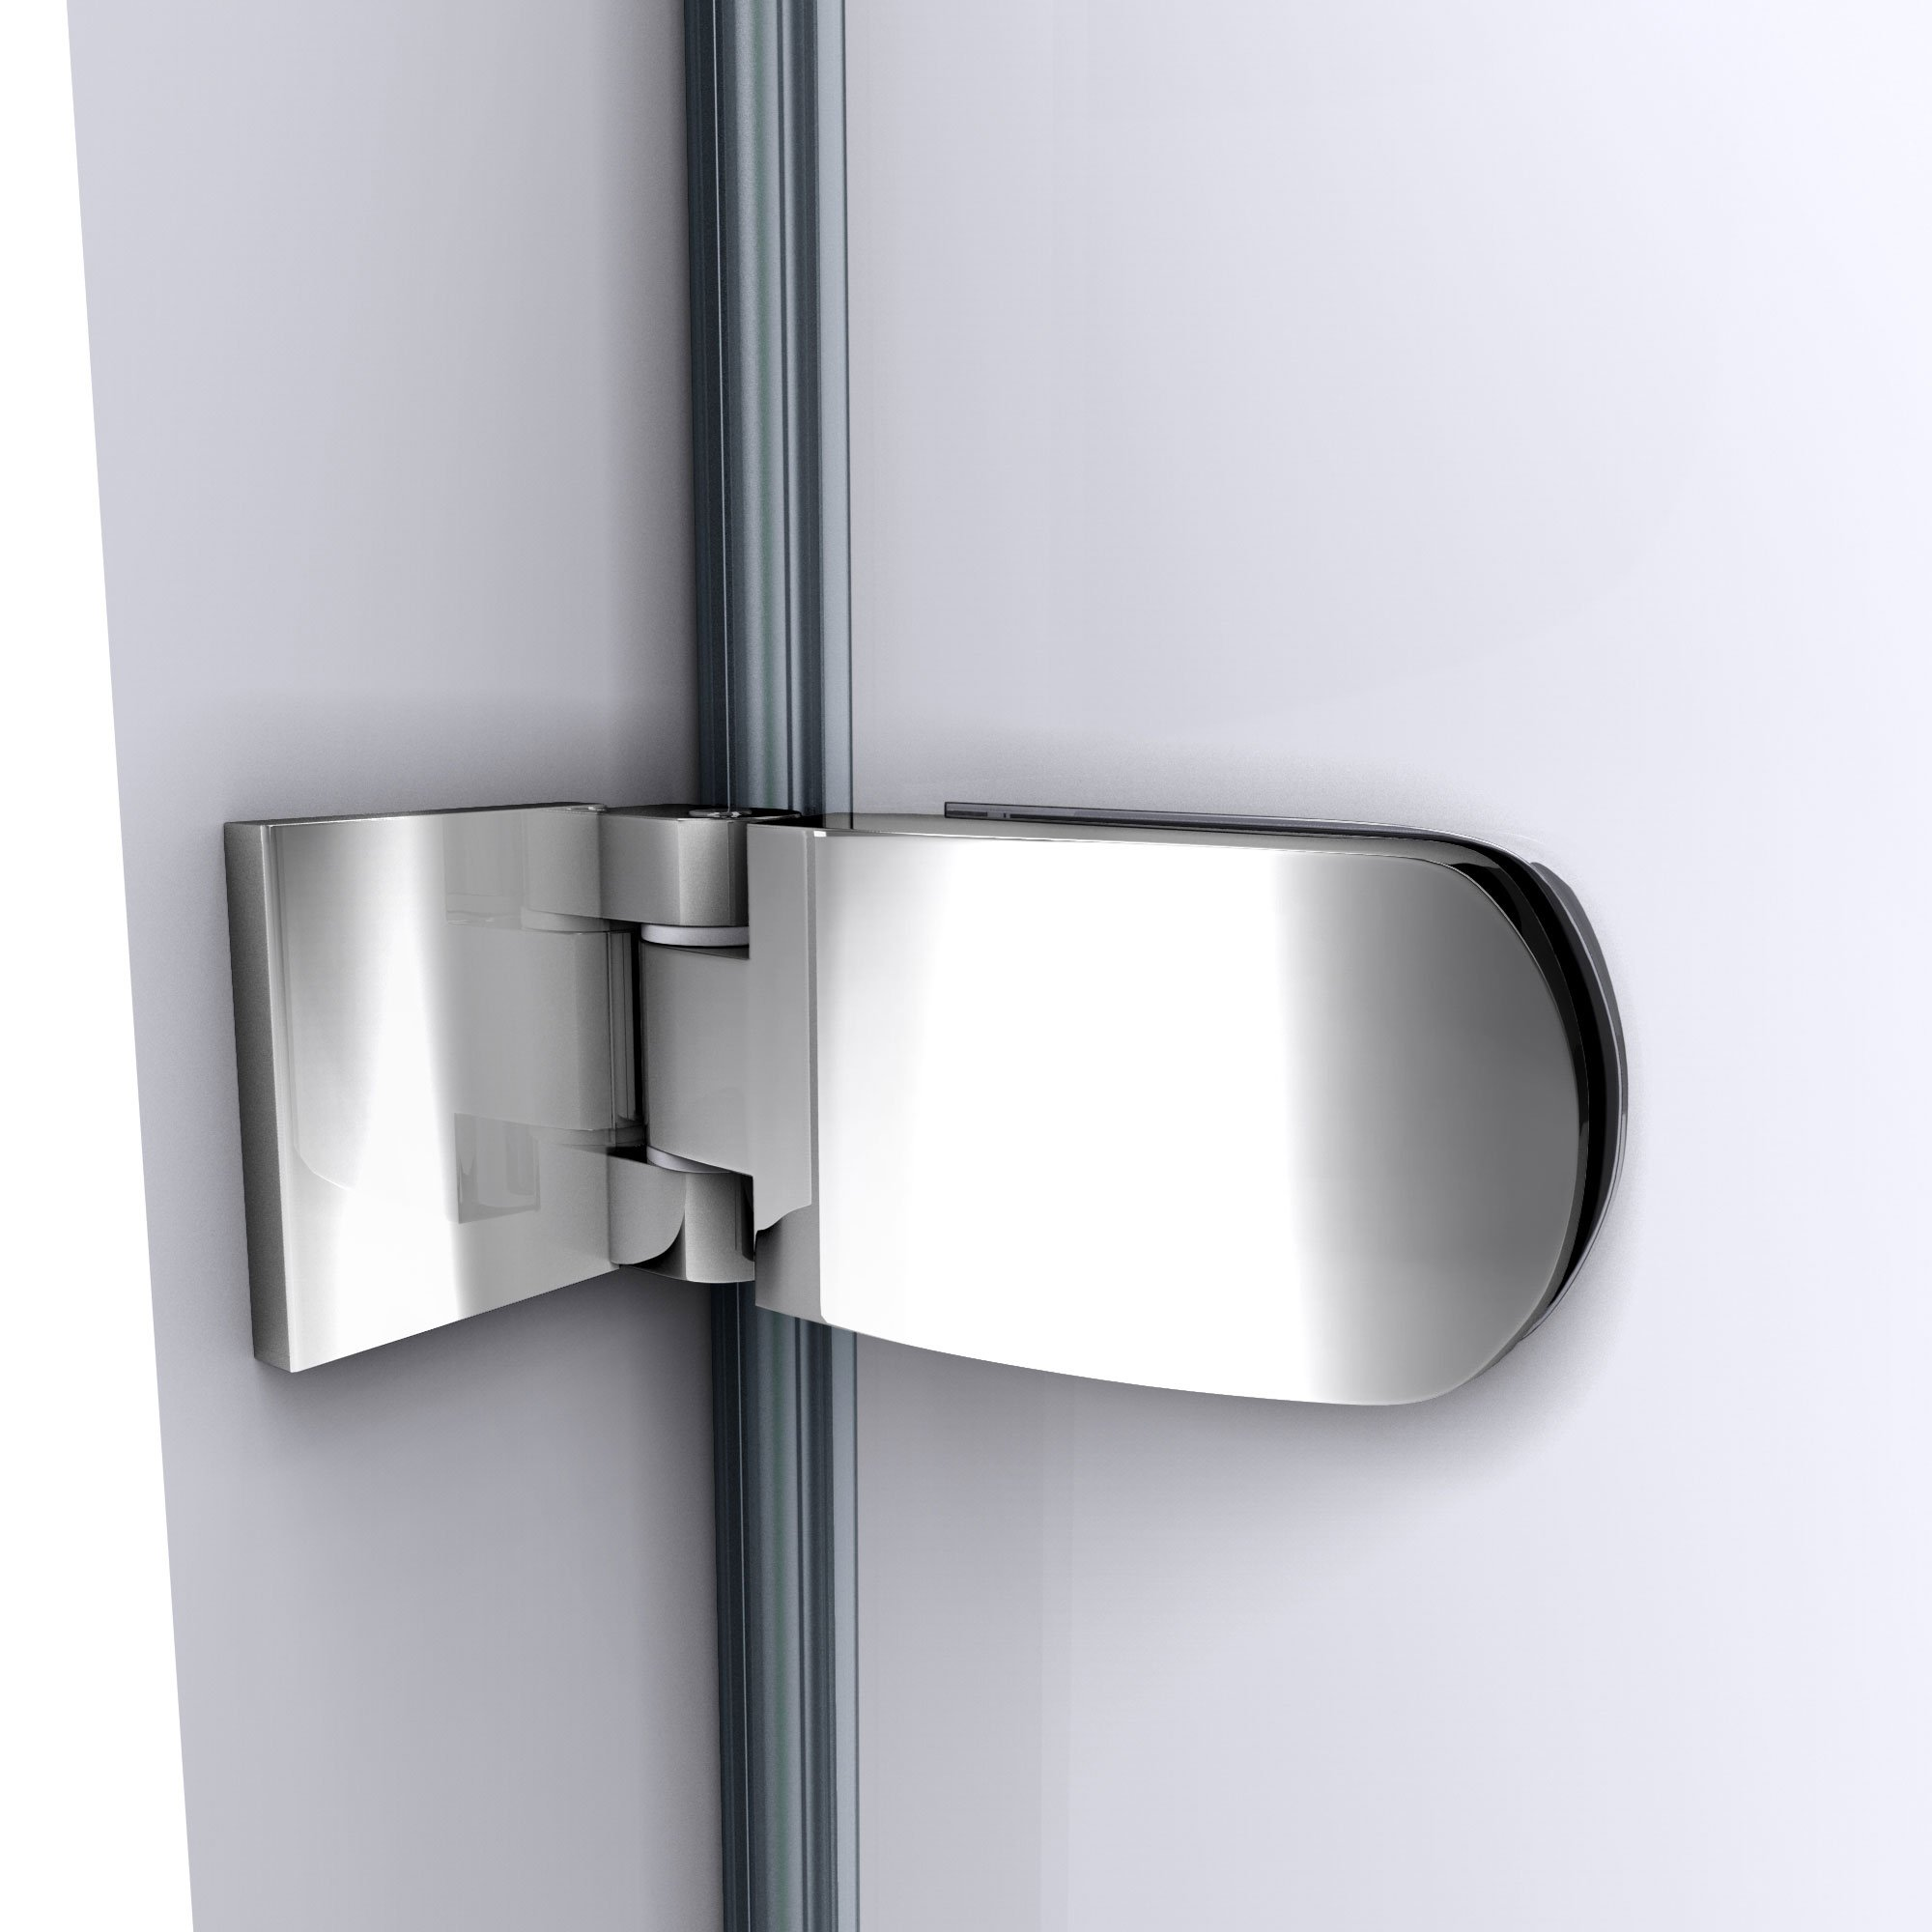 DreamLine Aqua Uno 34 in. Width, Frameless Hinged Tub Door, 1/4'' Glass, Chrome Finish by DreamLine (Image #8)